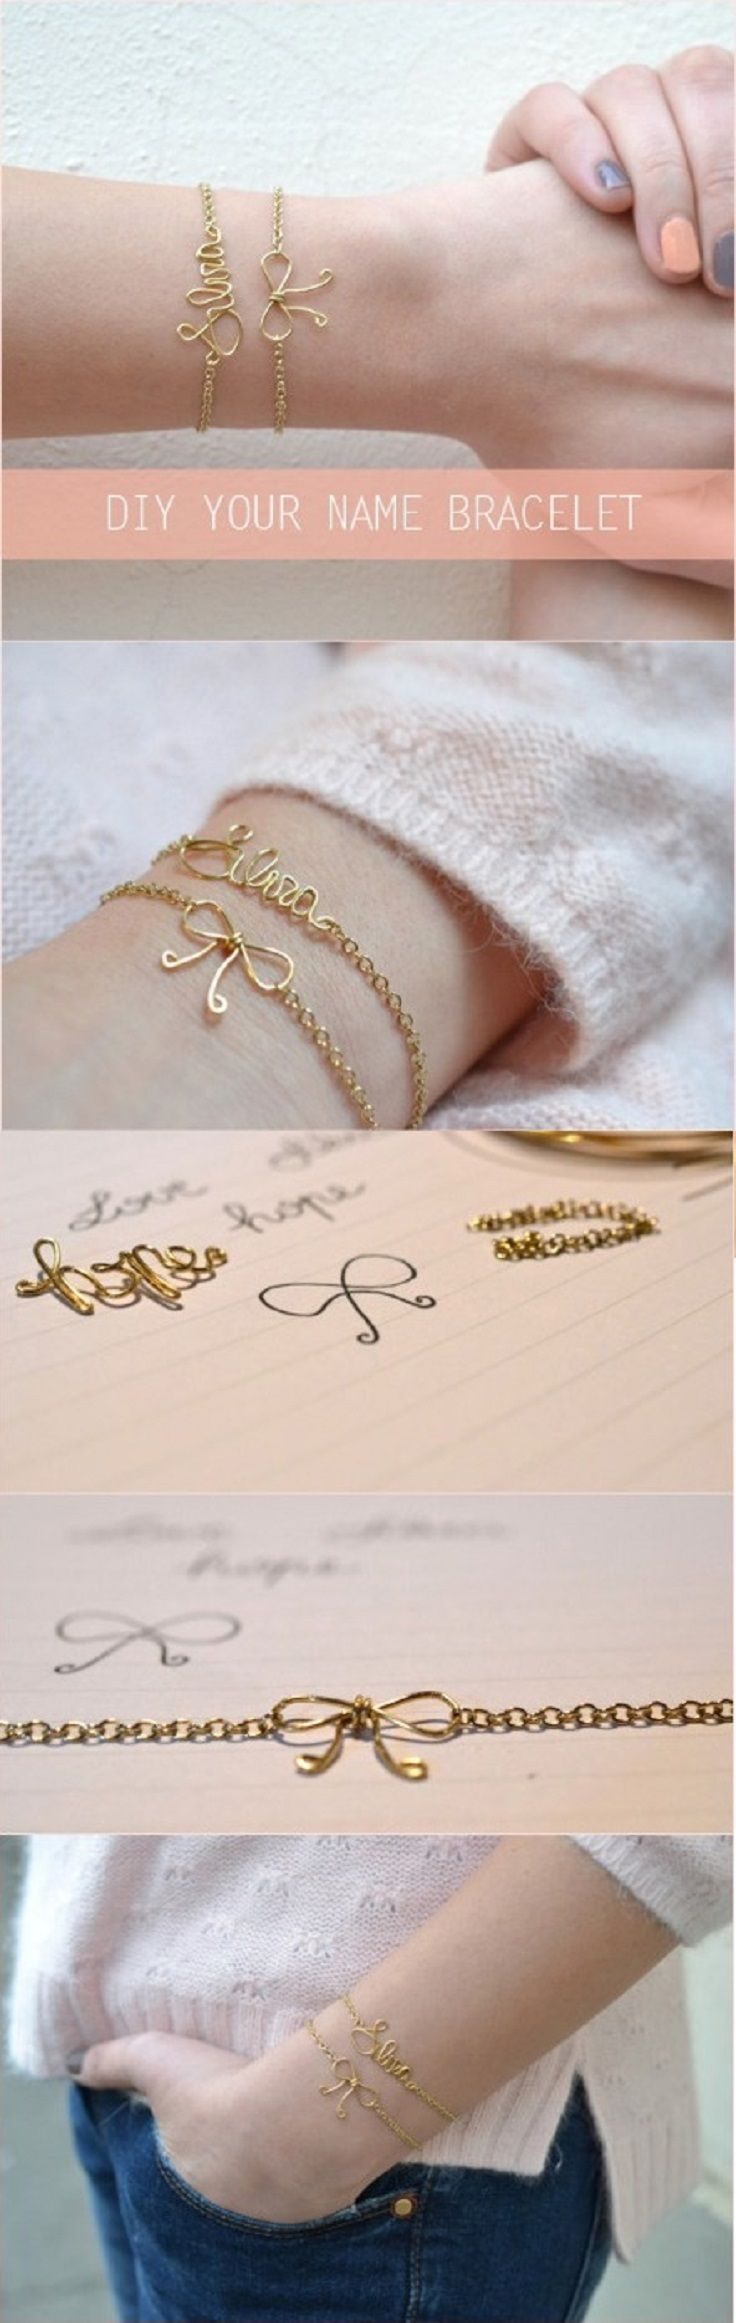 Diy Fashionable Bracelet You Can Really Make This Bracelet Mean Something That S Why It S So Great Diy Bracelets Fashion Craft Diy Wire Bracelet